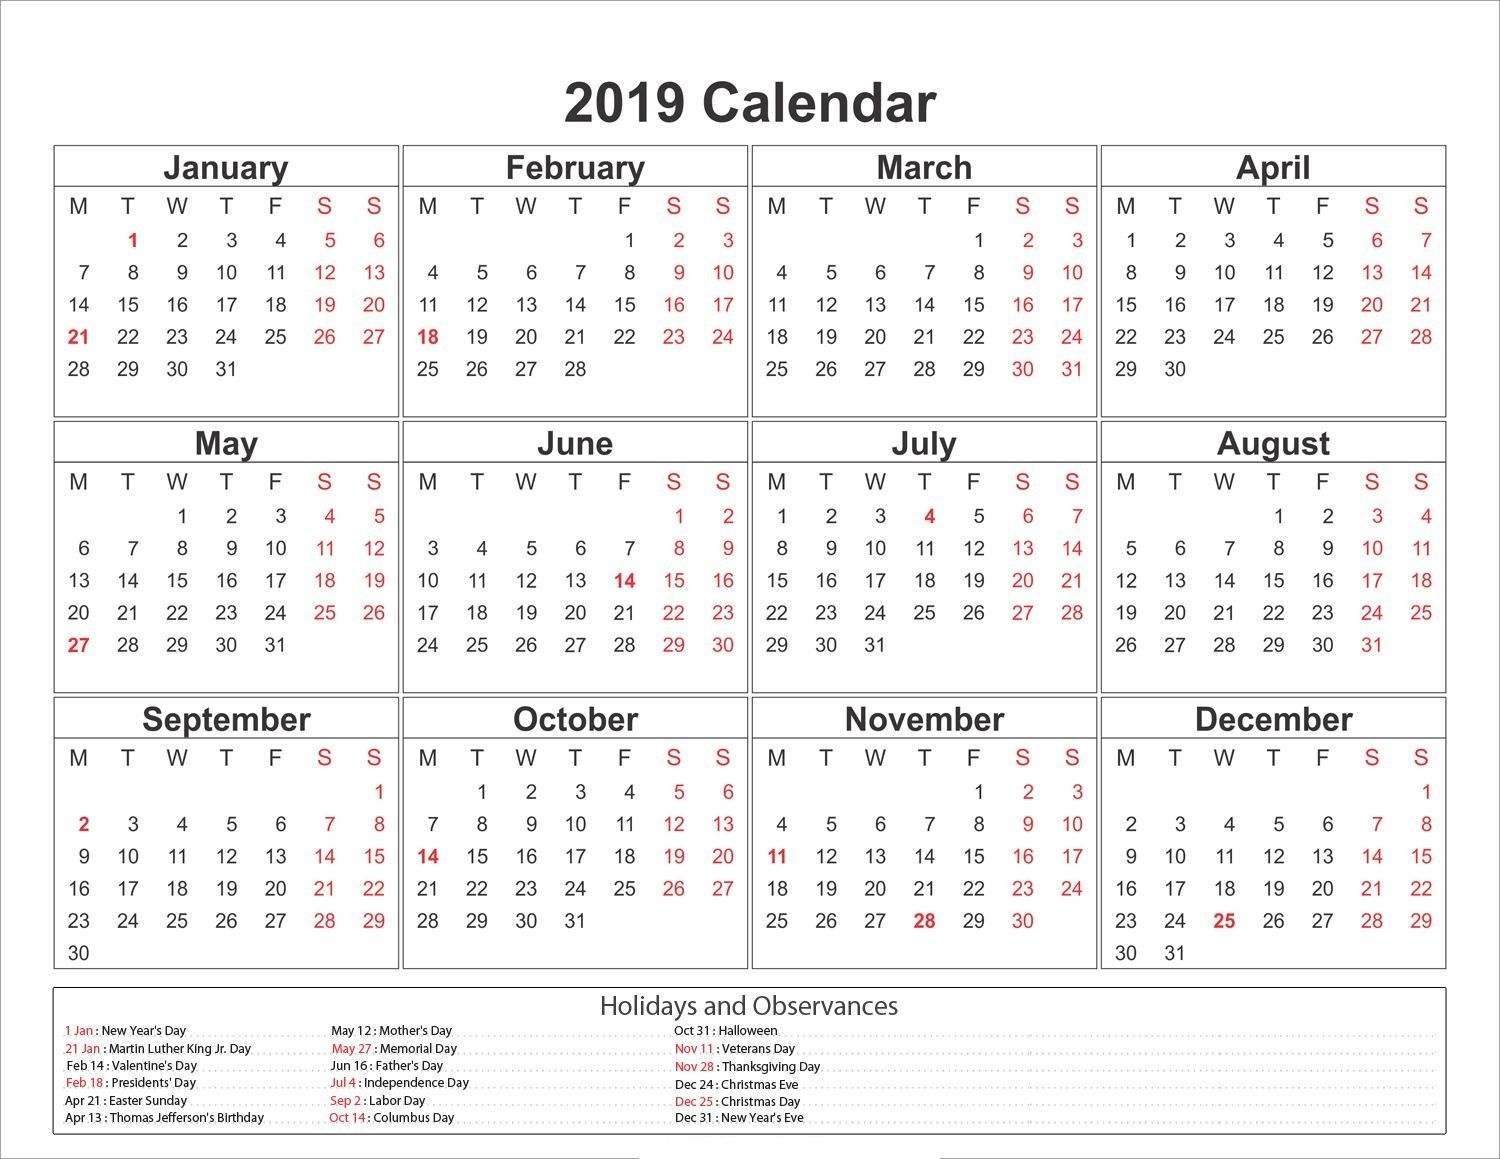 Day Of Year Calendar 2019 2019 Yearly Calendar Printable #2019calendar #Holidayscalendar